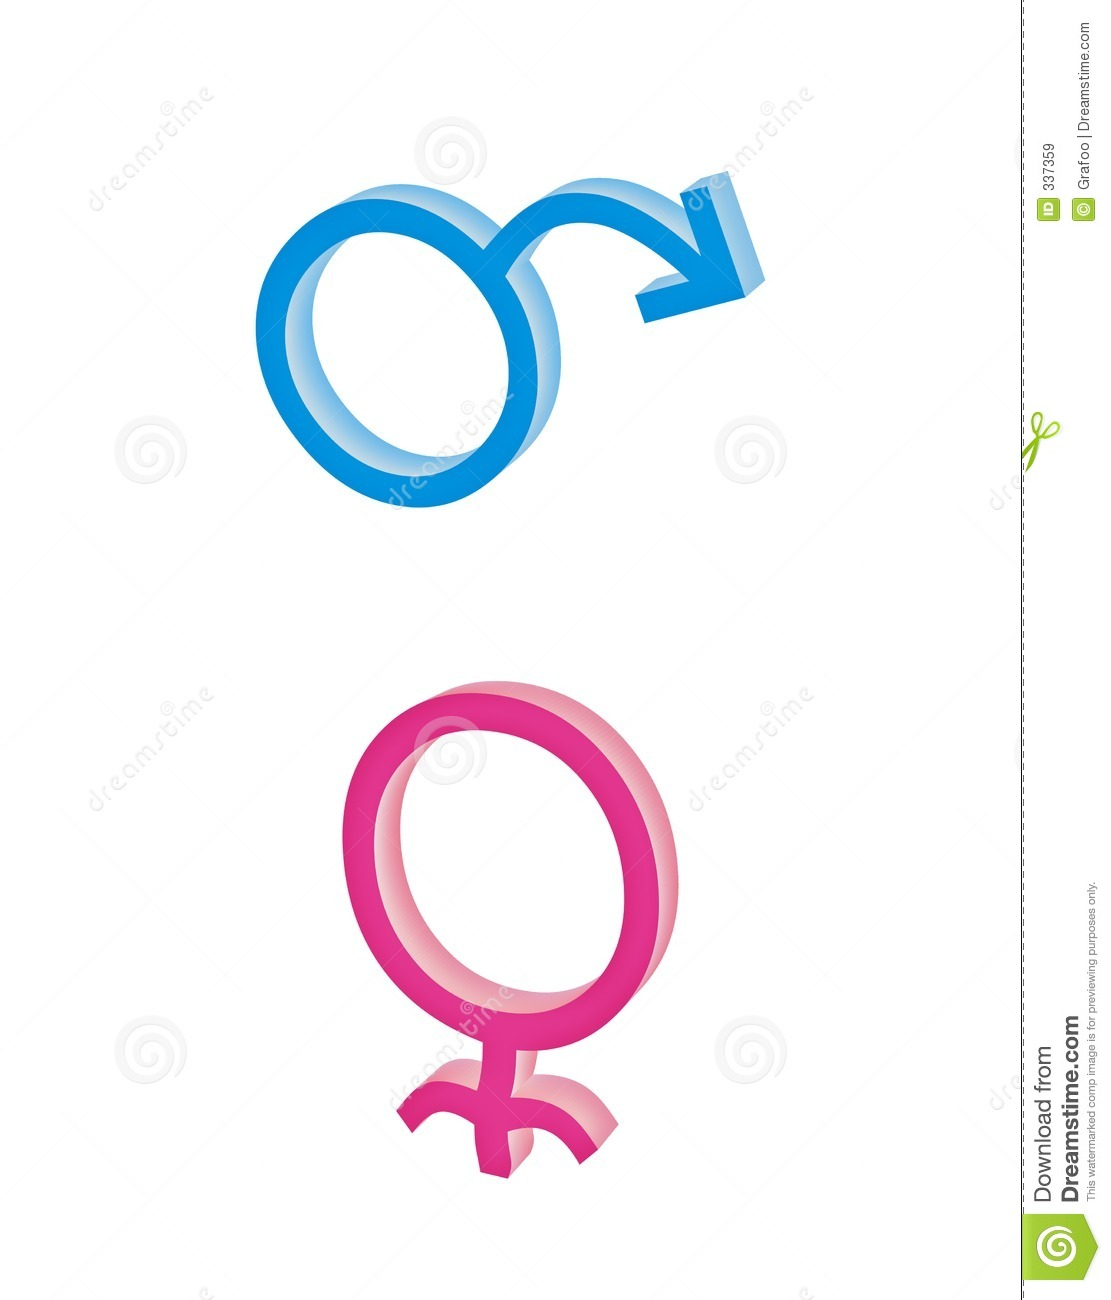 Male and female sex image downlode